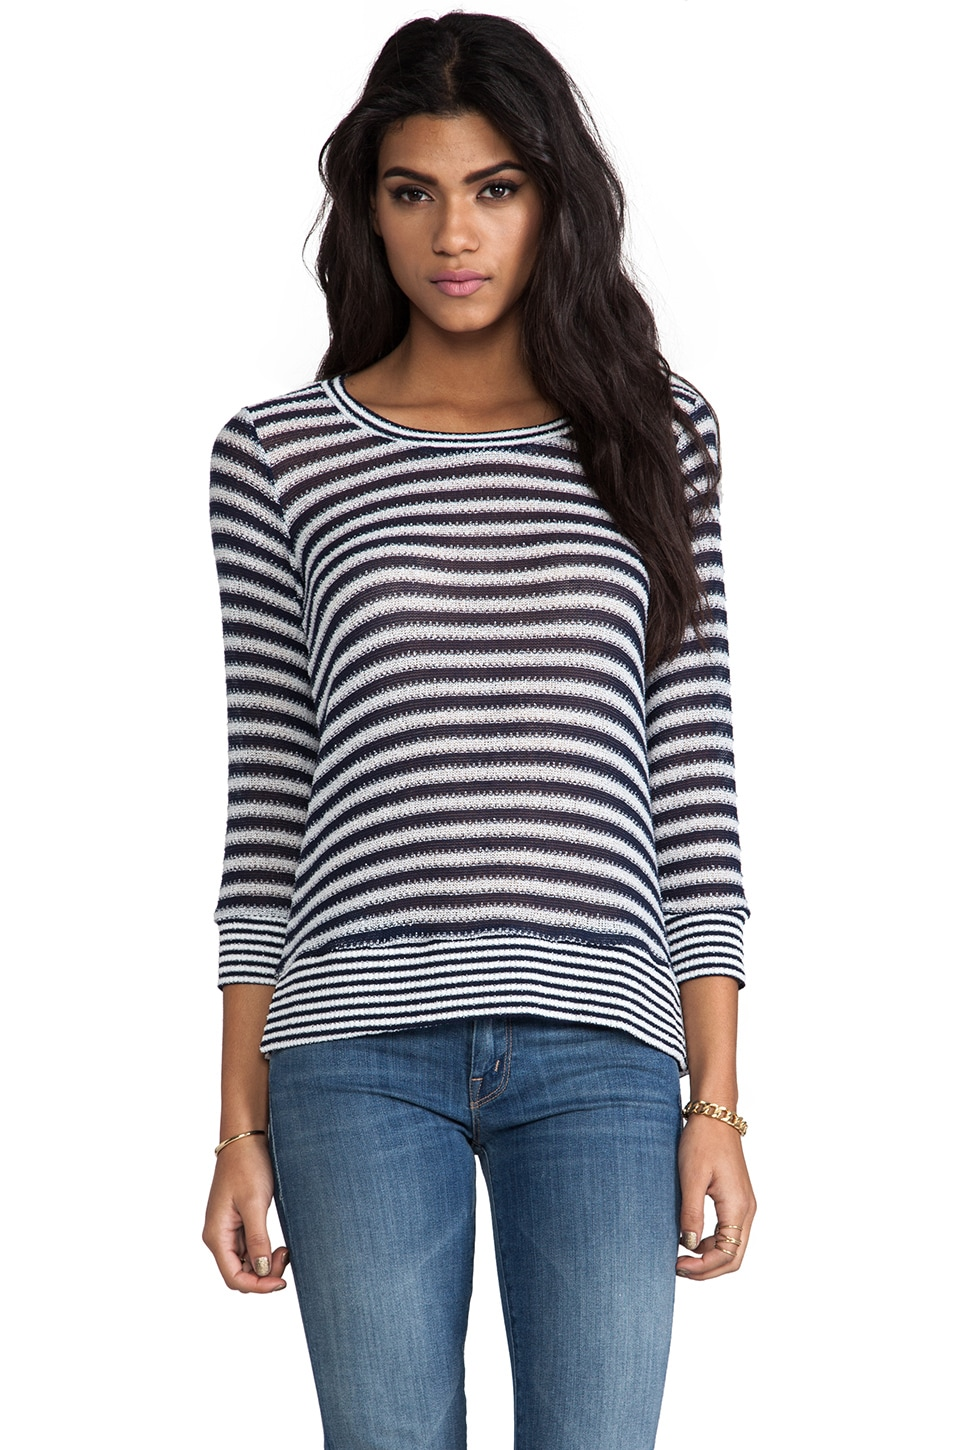 Splendid Deco Stripe Knit in Navy